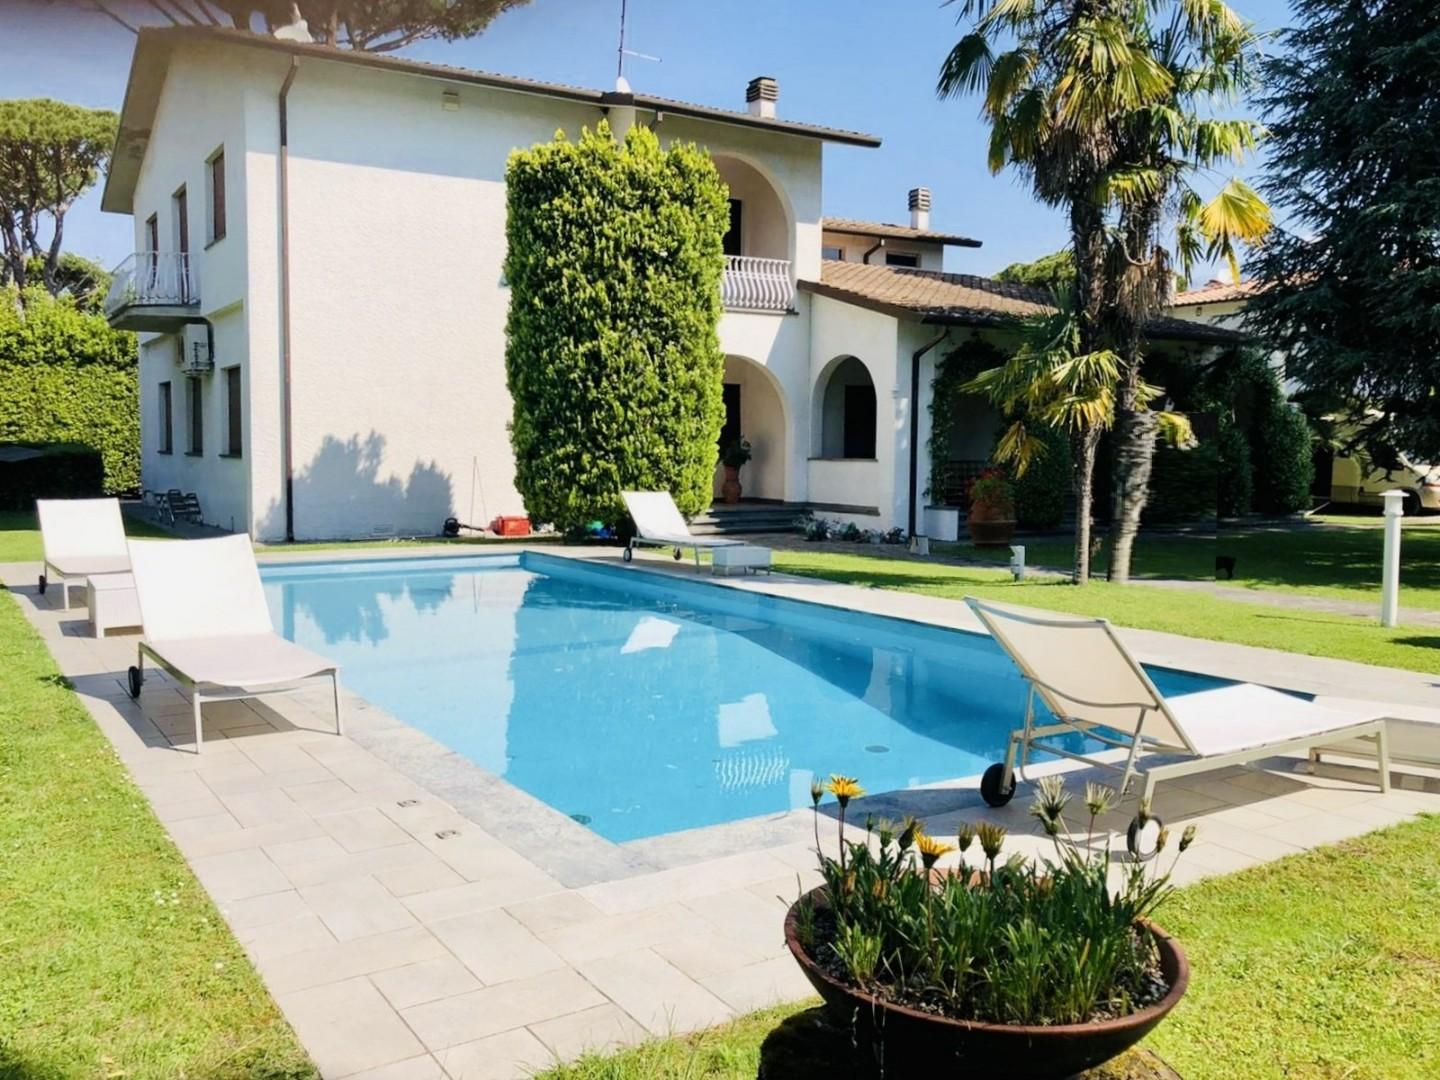 Single-family house for holiday rentals in Forte dei Marmi (LU)